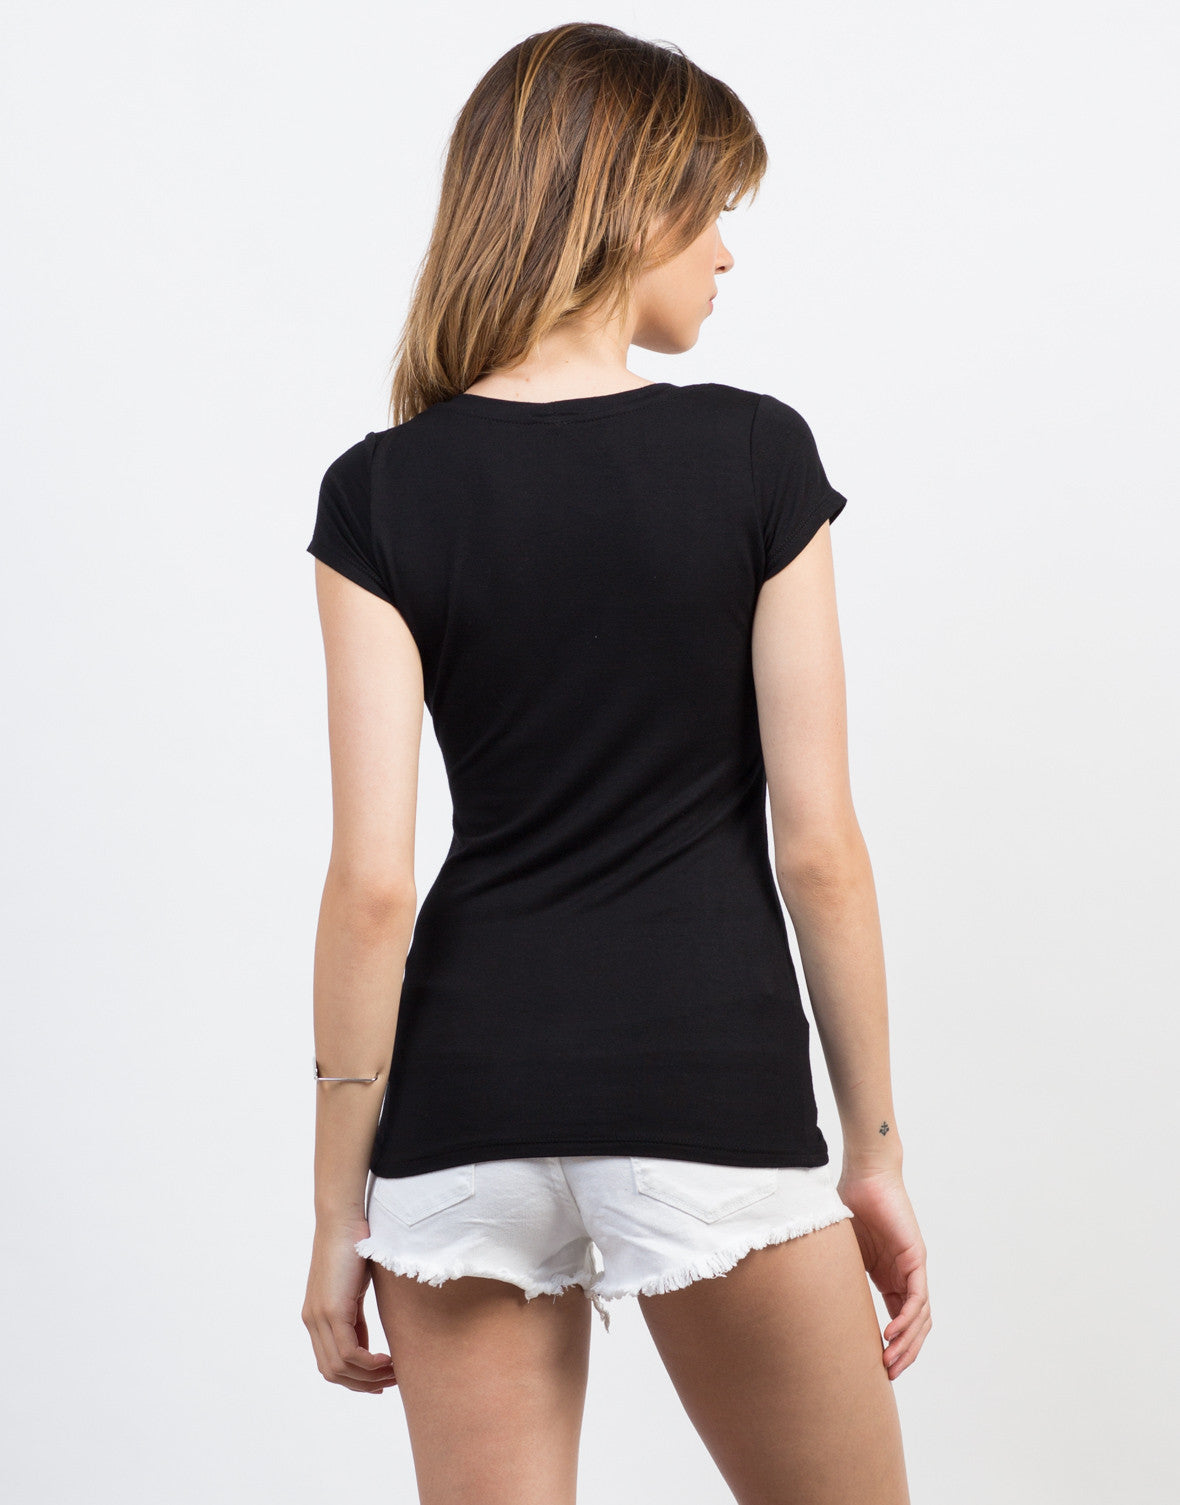 Back View of Double Strap Tee